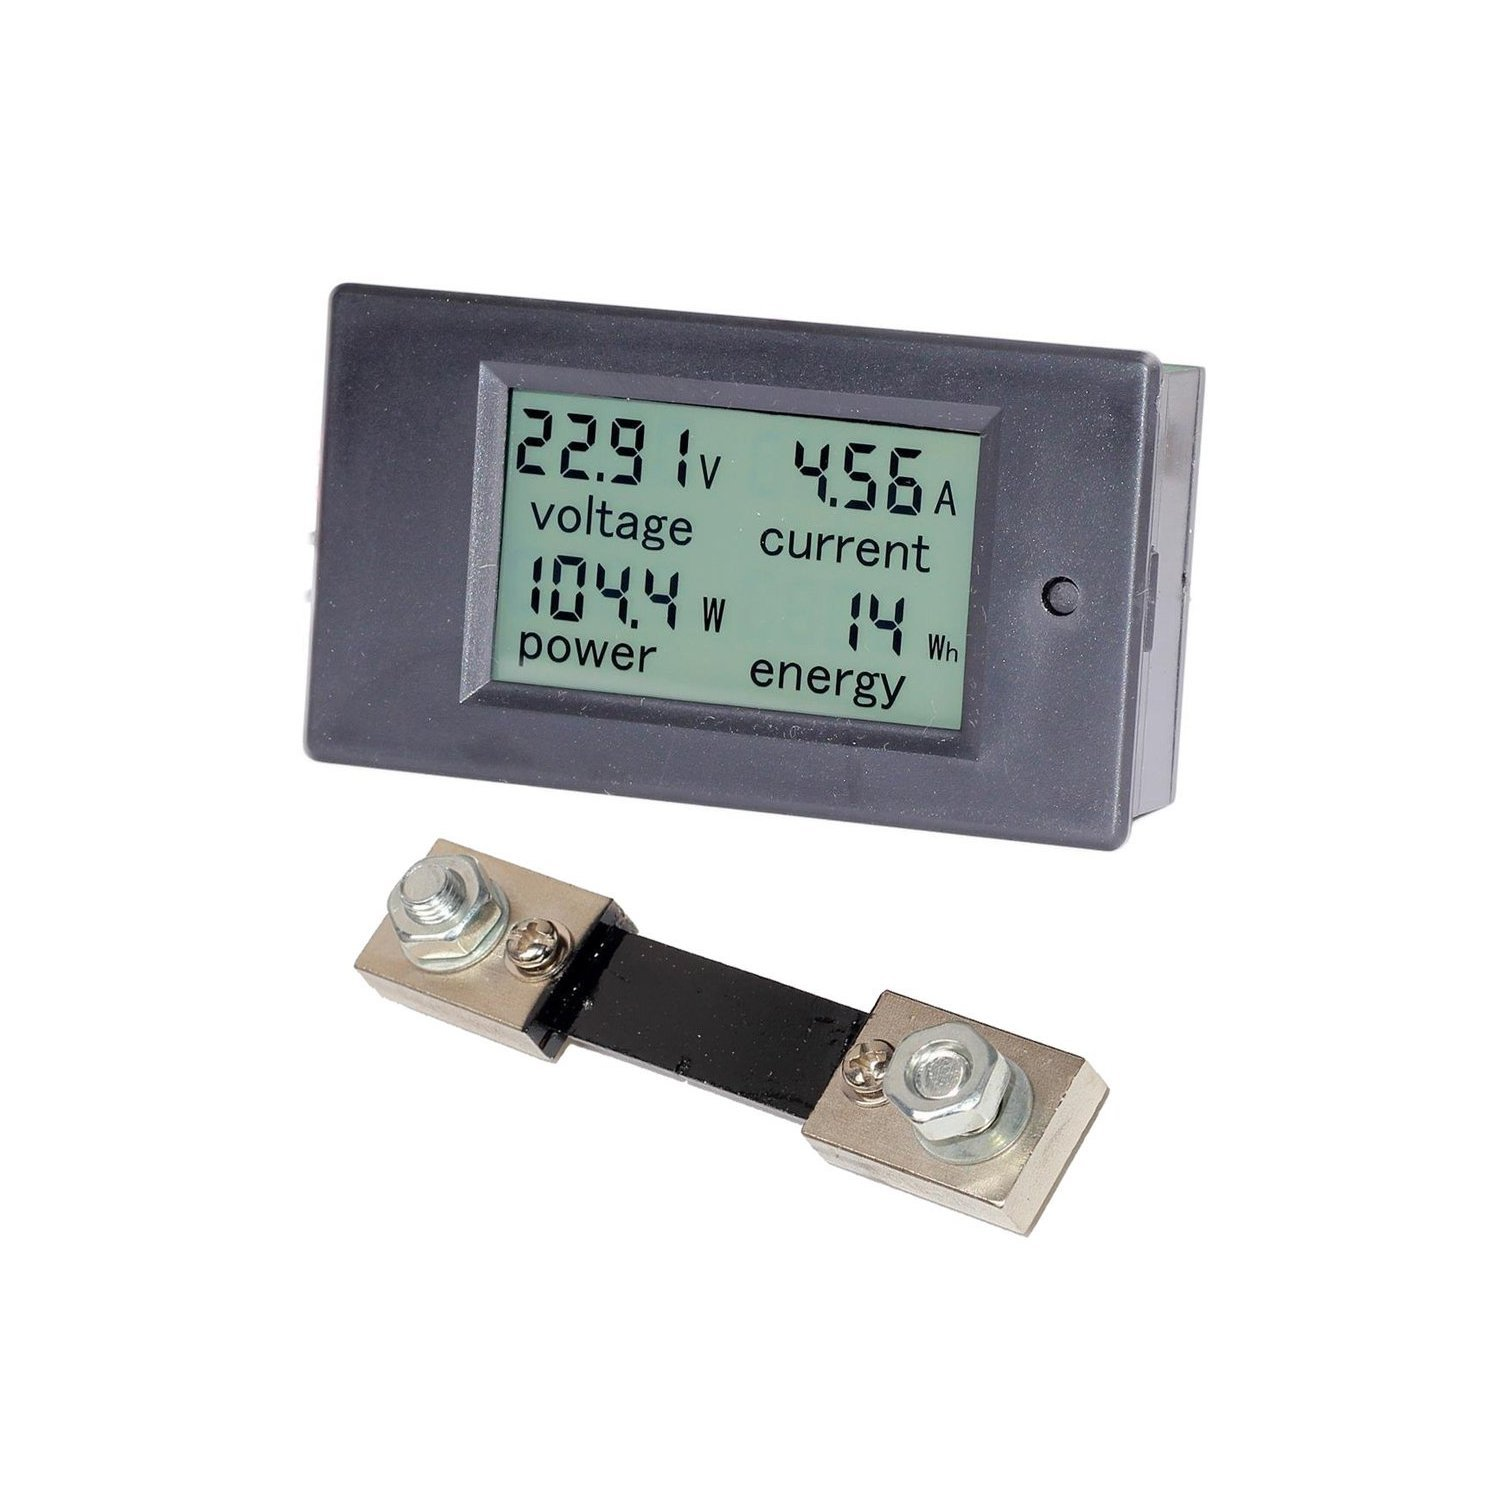 Spartan Power DC Meter Battery Monitor and Multimeter 0-100A 6.5V-100VDC LCD Digital Display Comes with 100A Current Shunt